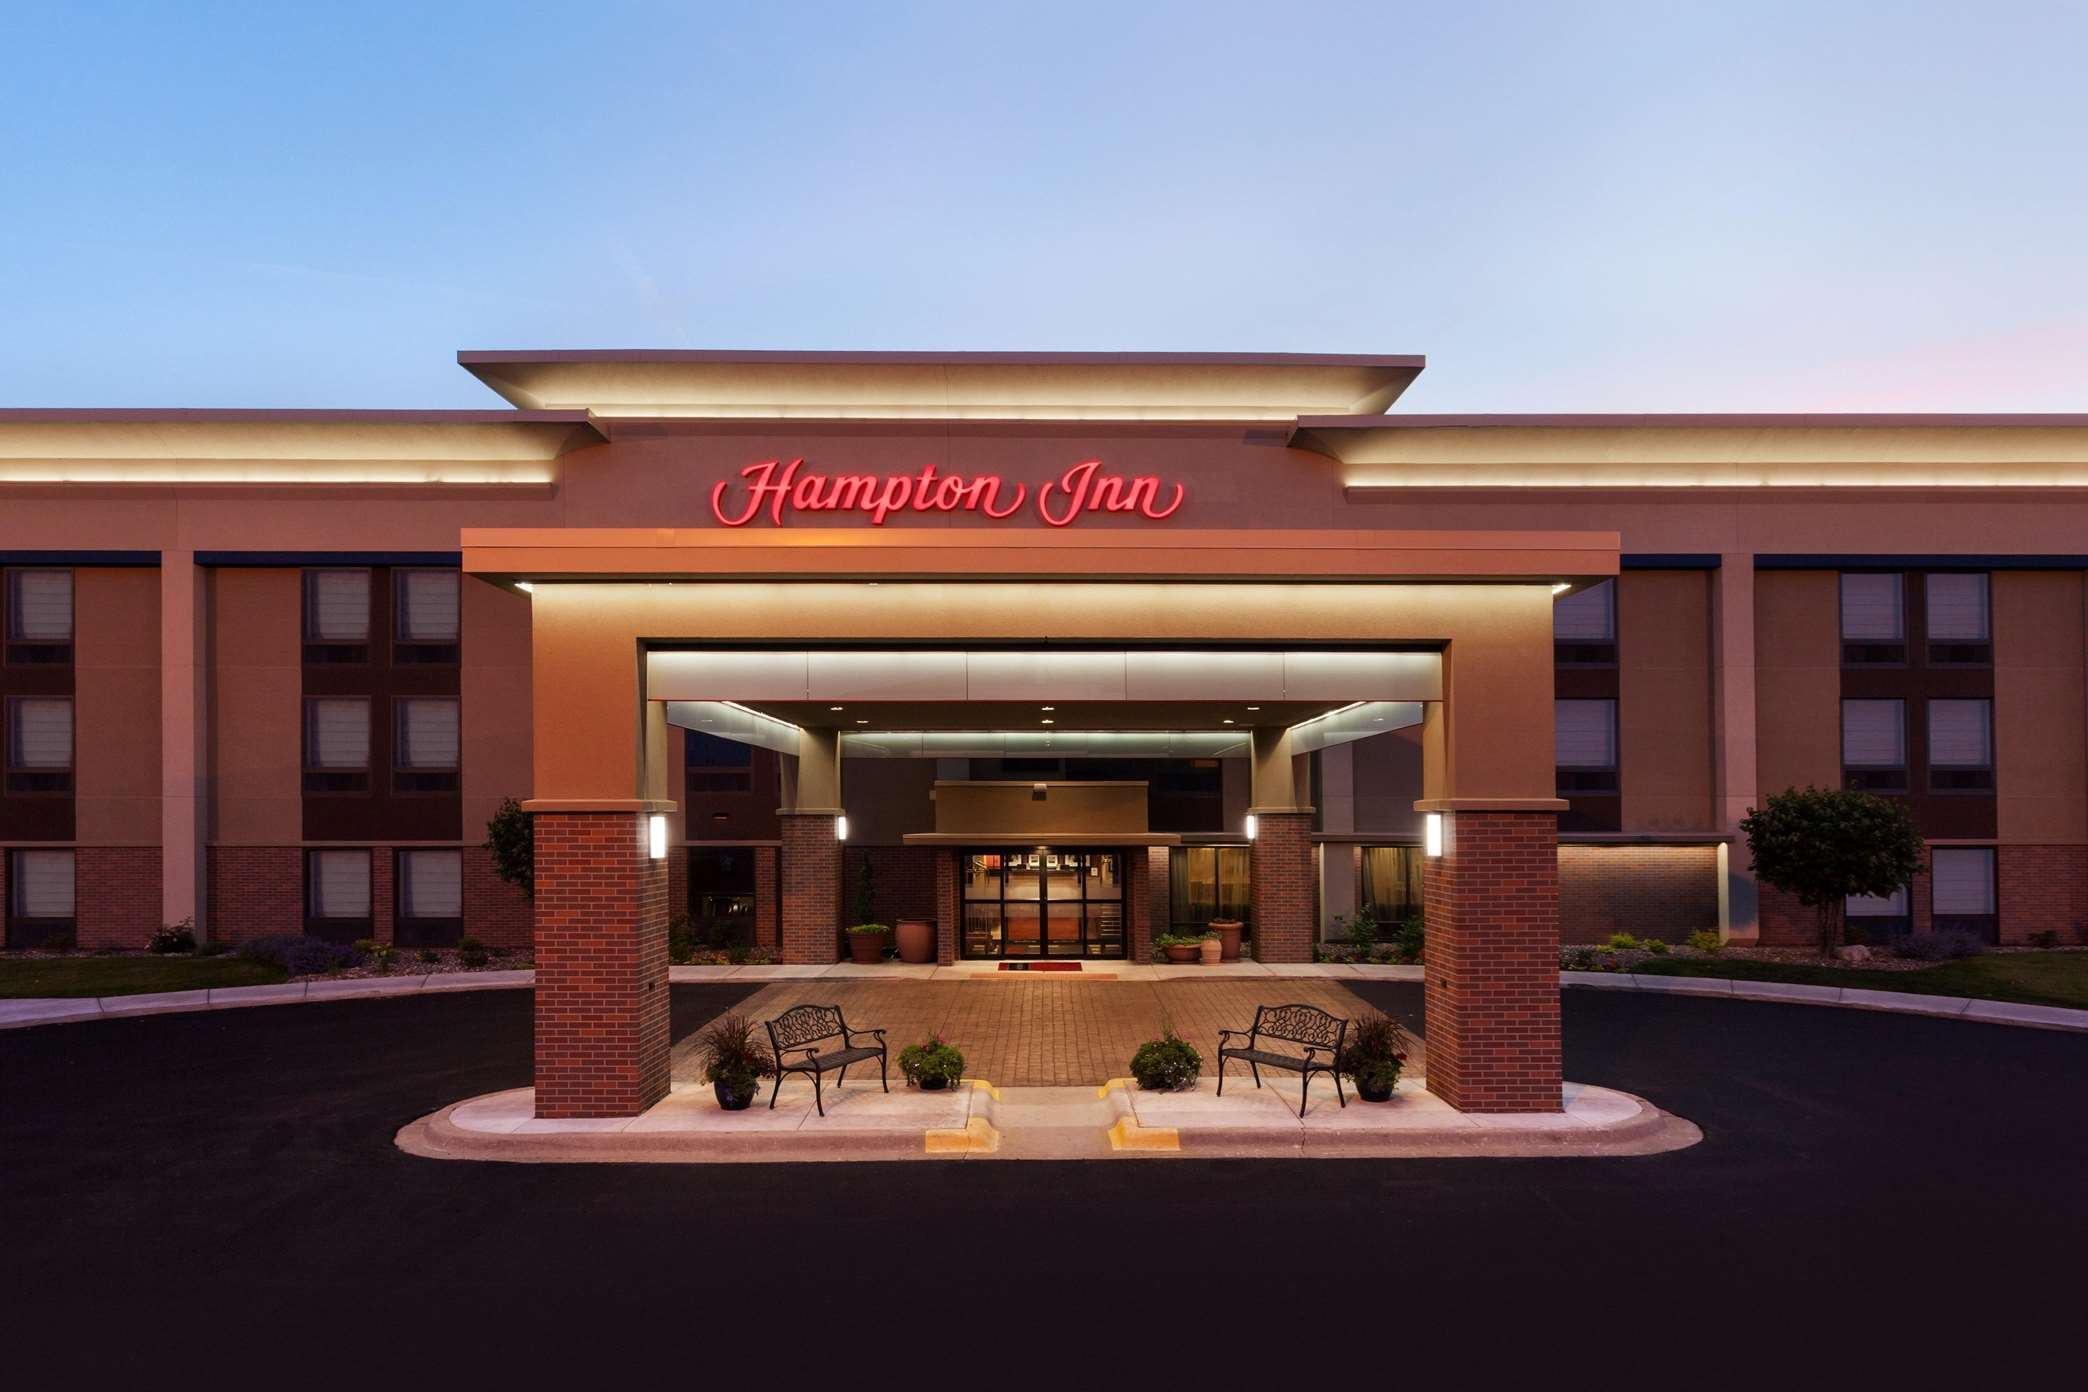 Hampton inn discount coupons